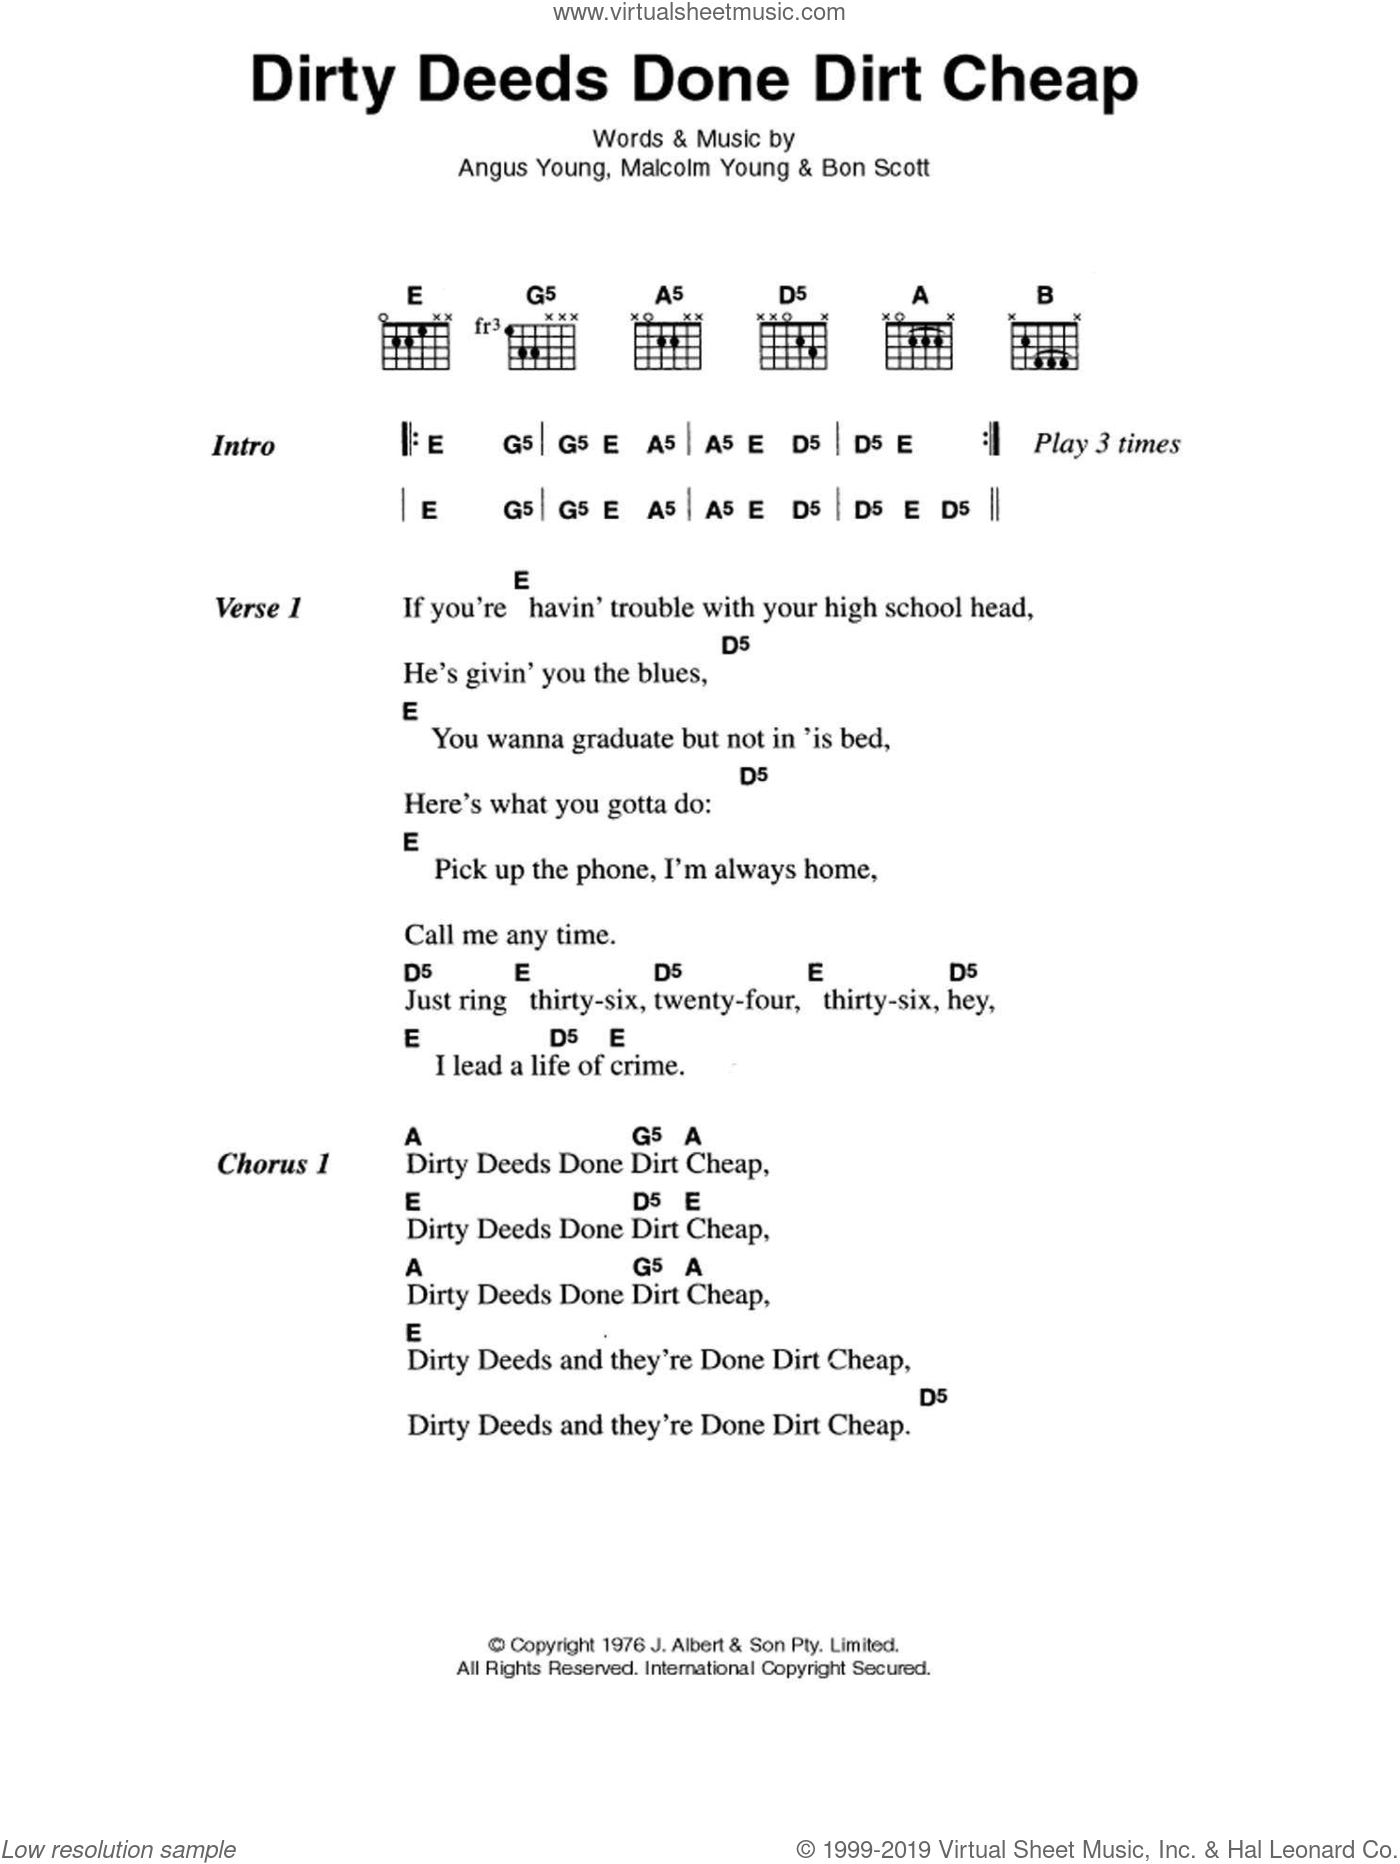 Dirty Deeds Done Dirt Cheap sheet music for guitar (chords, lyrics, melody) by Angus Young